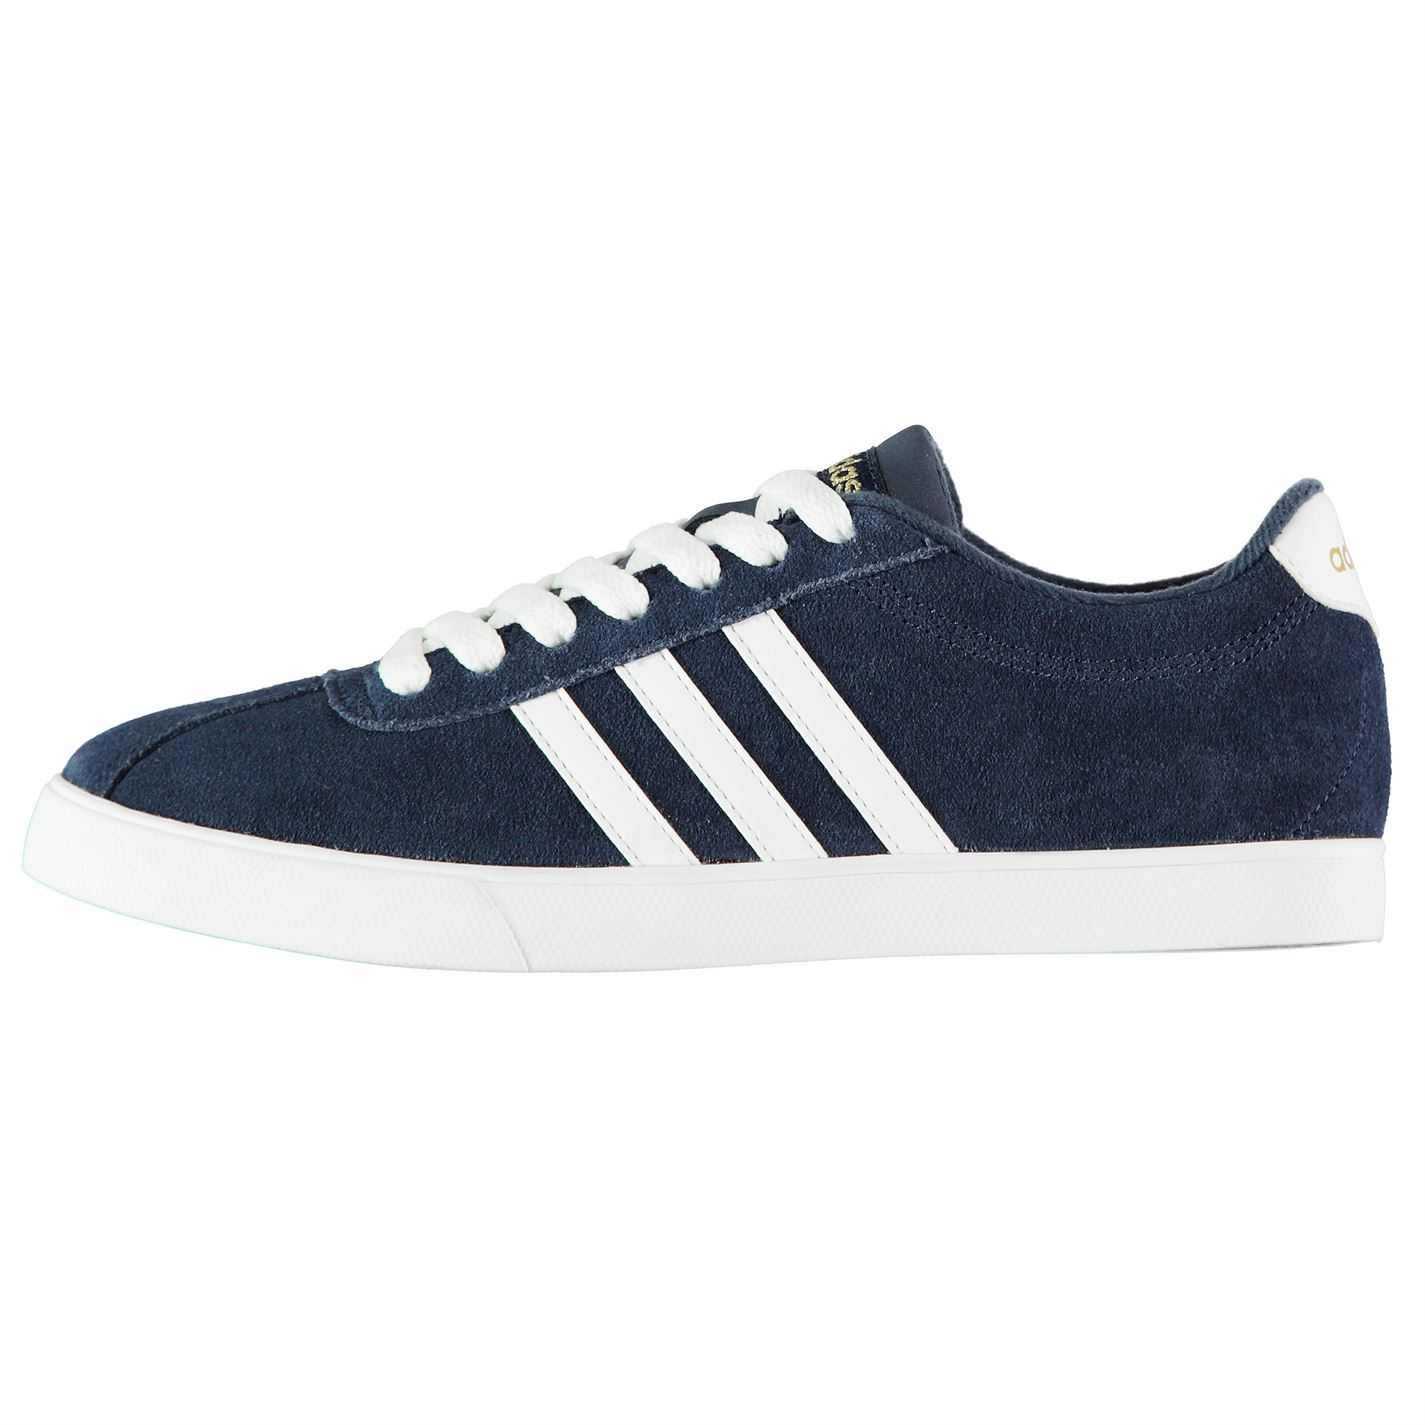 55770a7de79e adidas Court Set Suede Trainers Womens Navy White Sports Trainers Sneakers